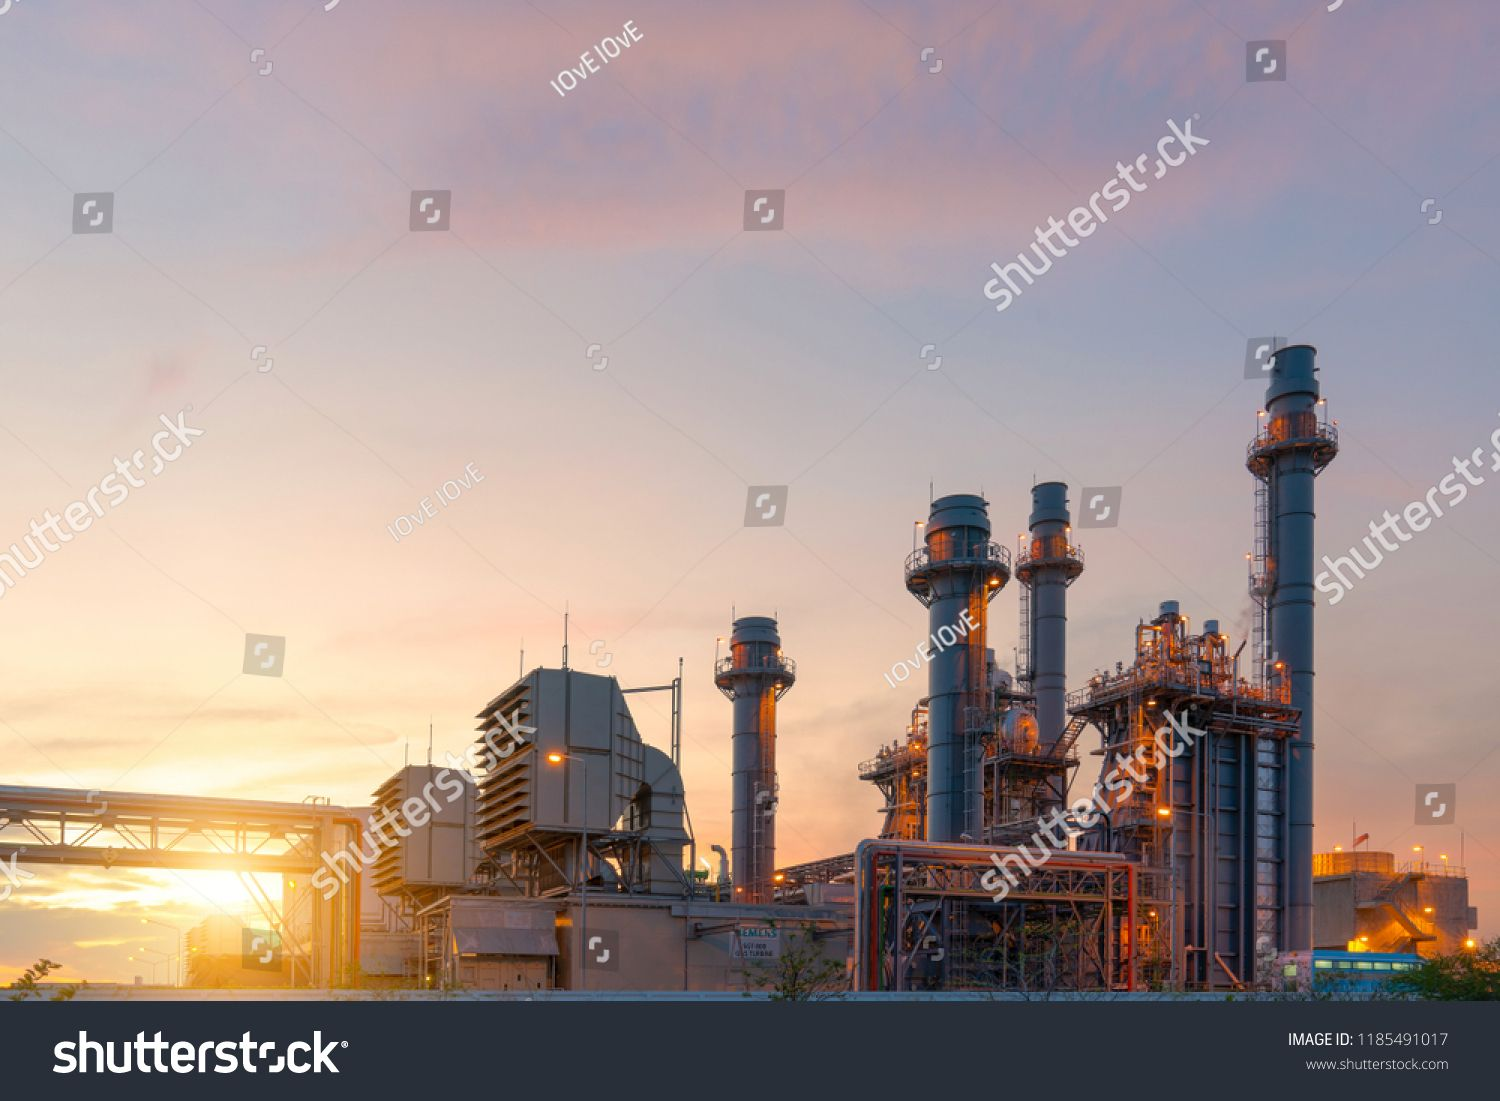 Industry Gas Turbine Electrical Power Plant Sponsored